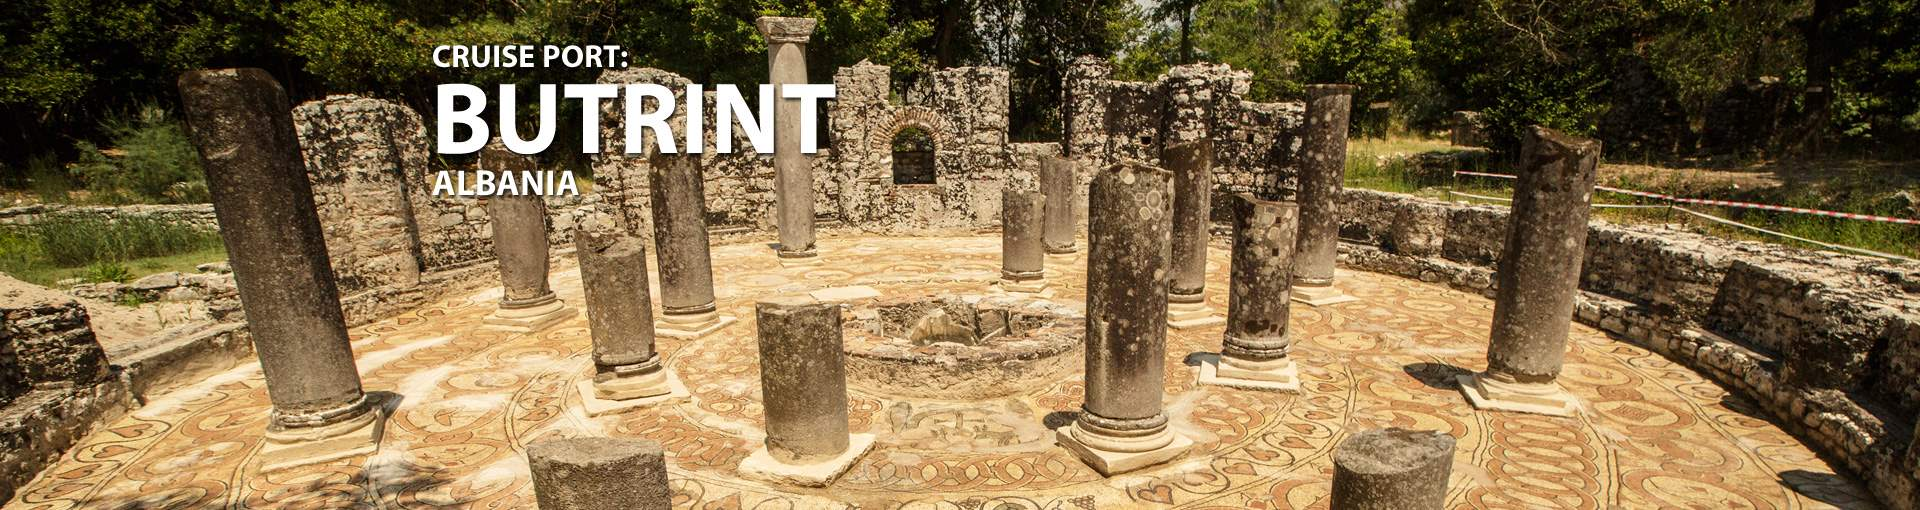 Cruises to Butrint, Albania